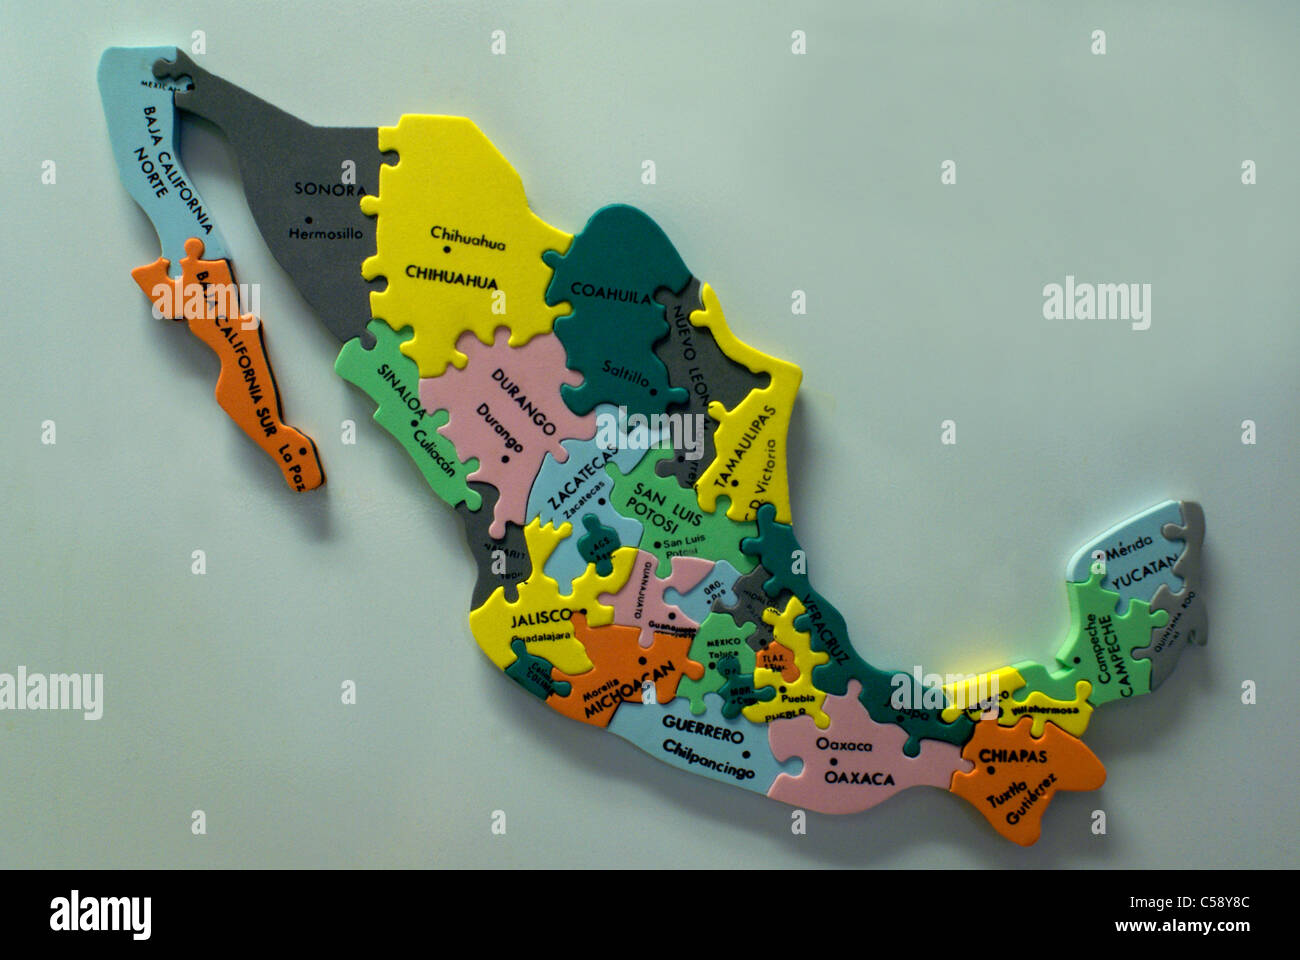 colorful jigsaw map of mexico puzzle showing mexican states and major cities